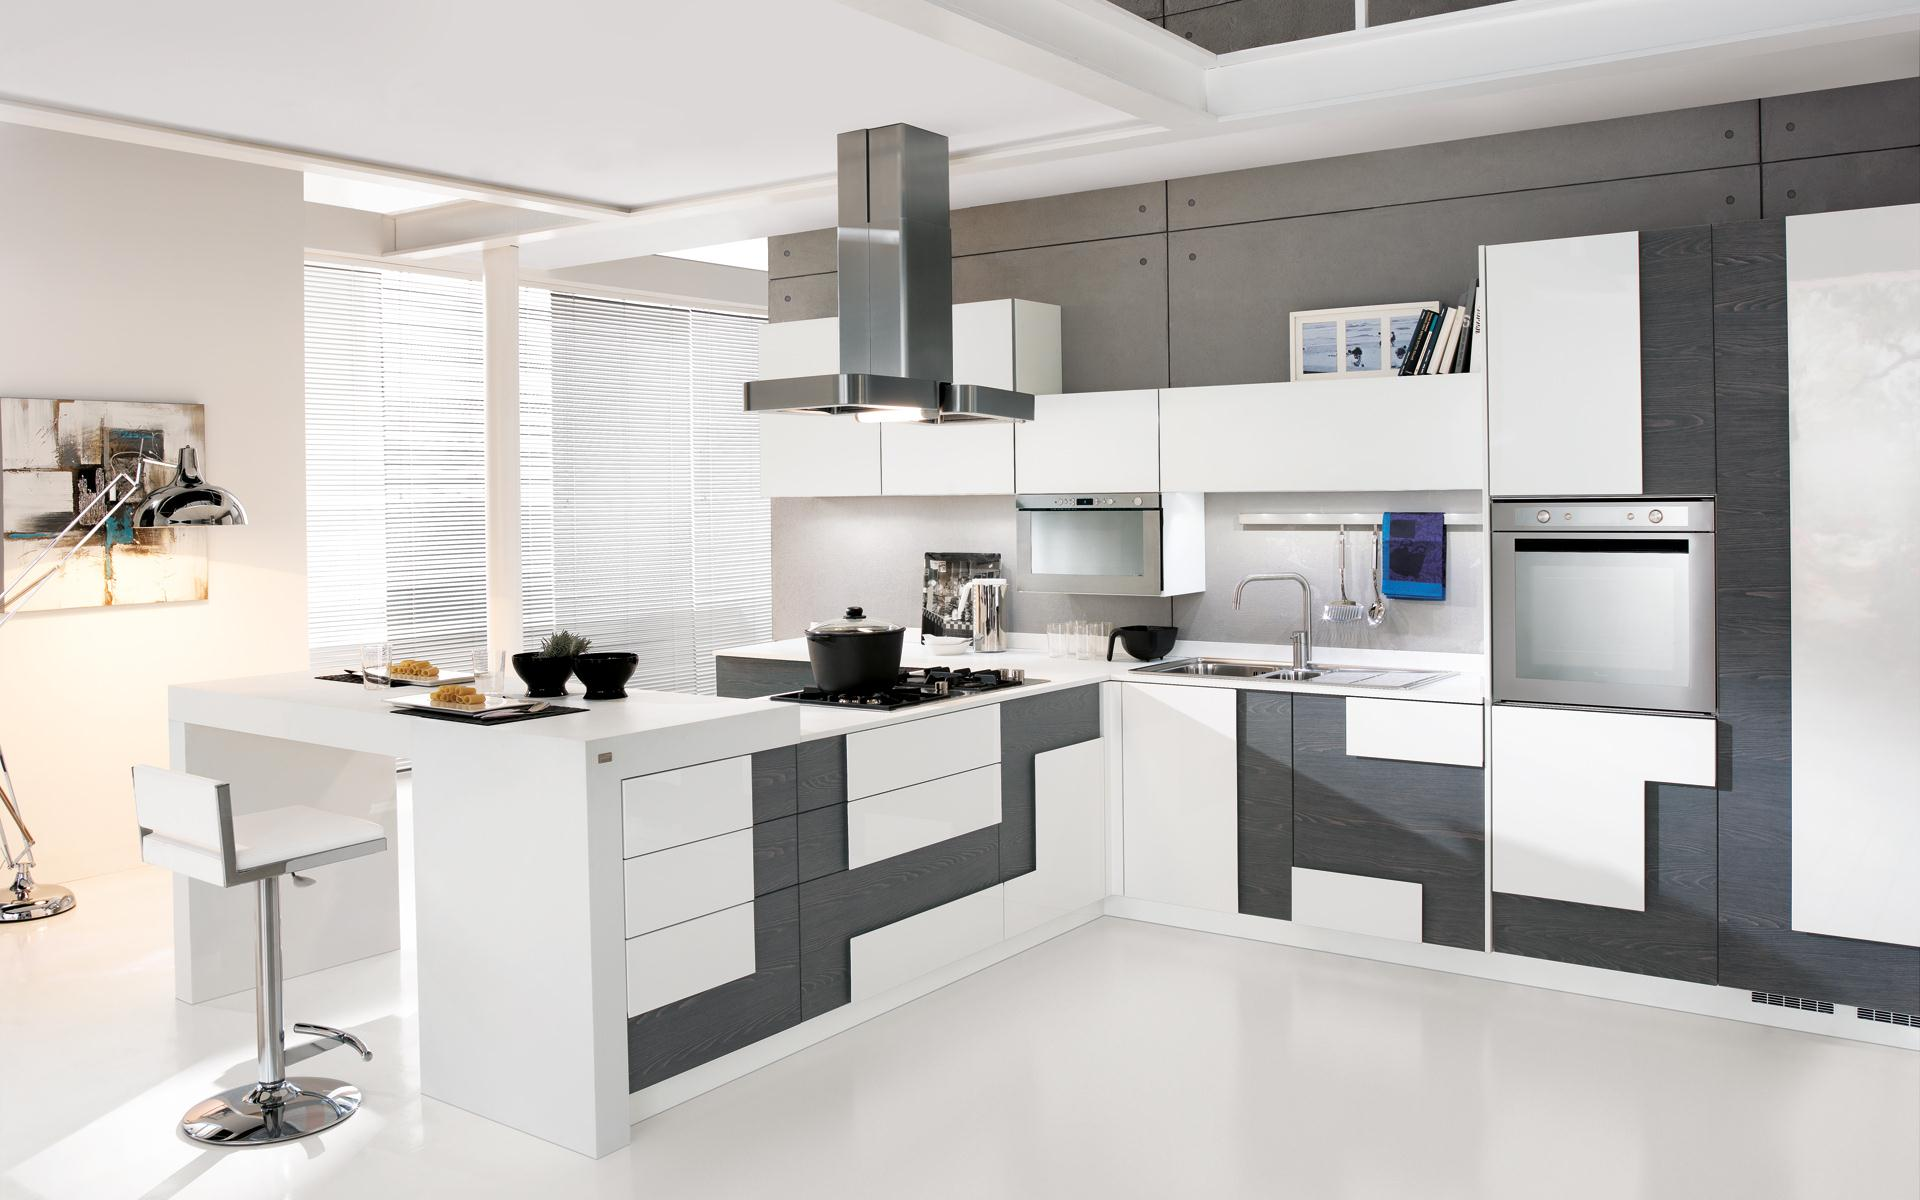 Beautiful Gentili Cucine Opinioni Pictures - Skilifts.us - skilifts.us